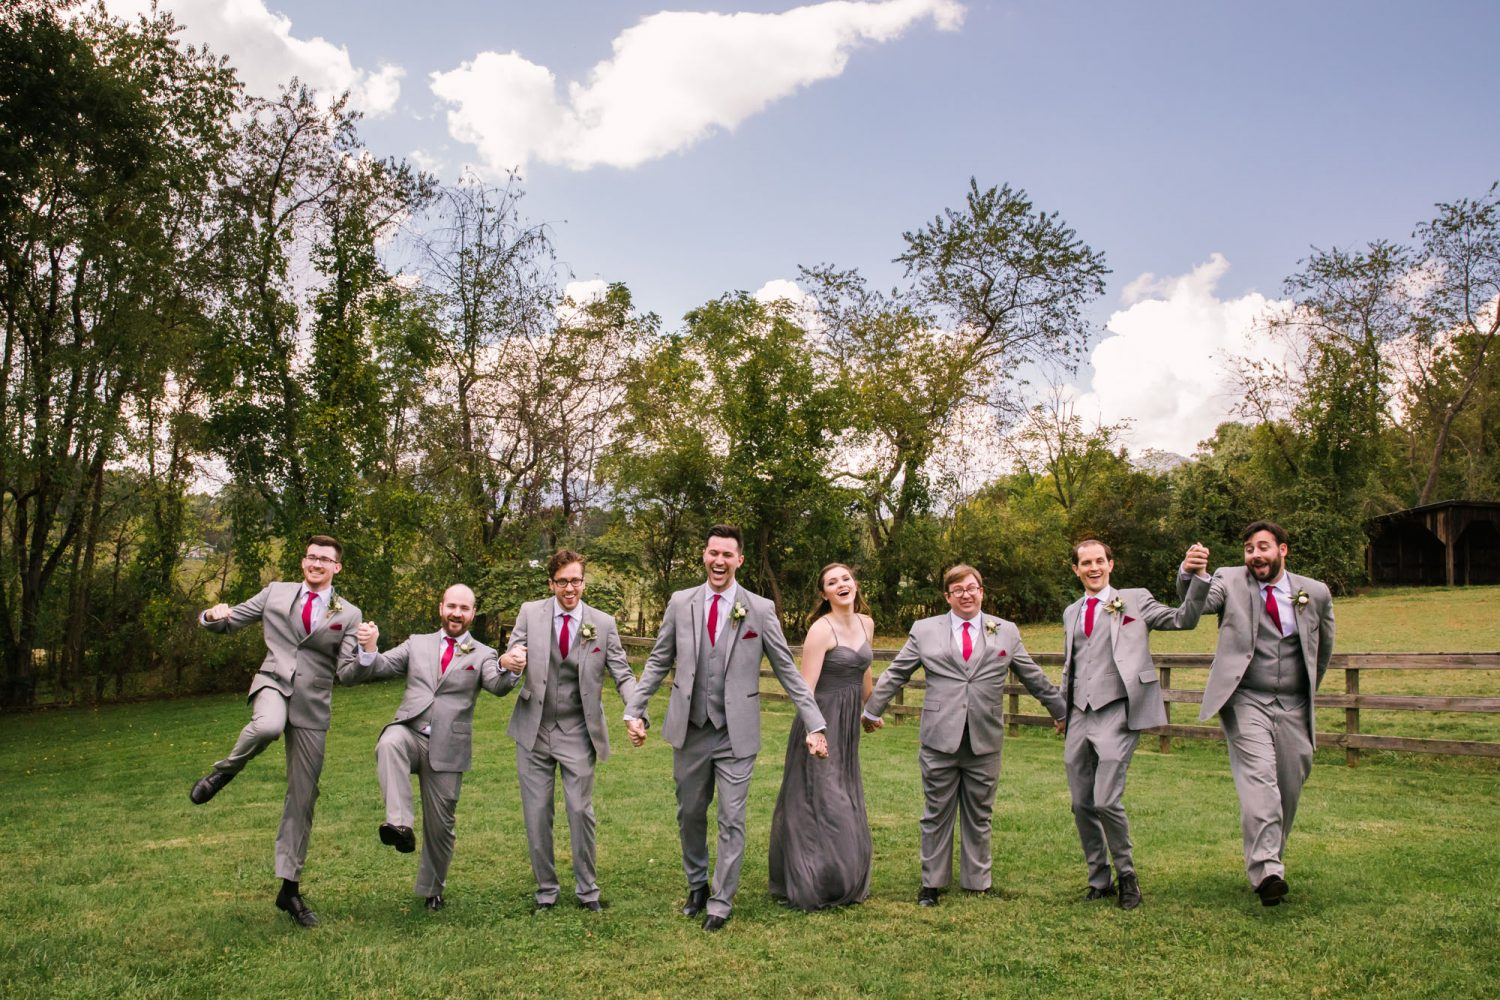 Waynesville NC Wedding Photography | Groomsmen Laughing and Frolicking in the Field